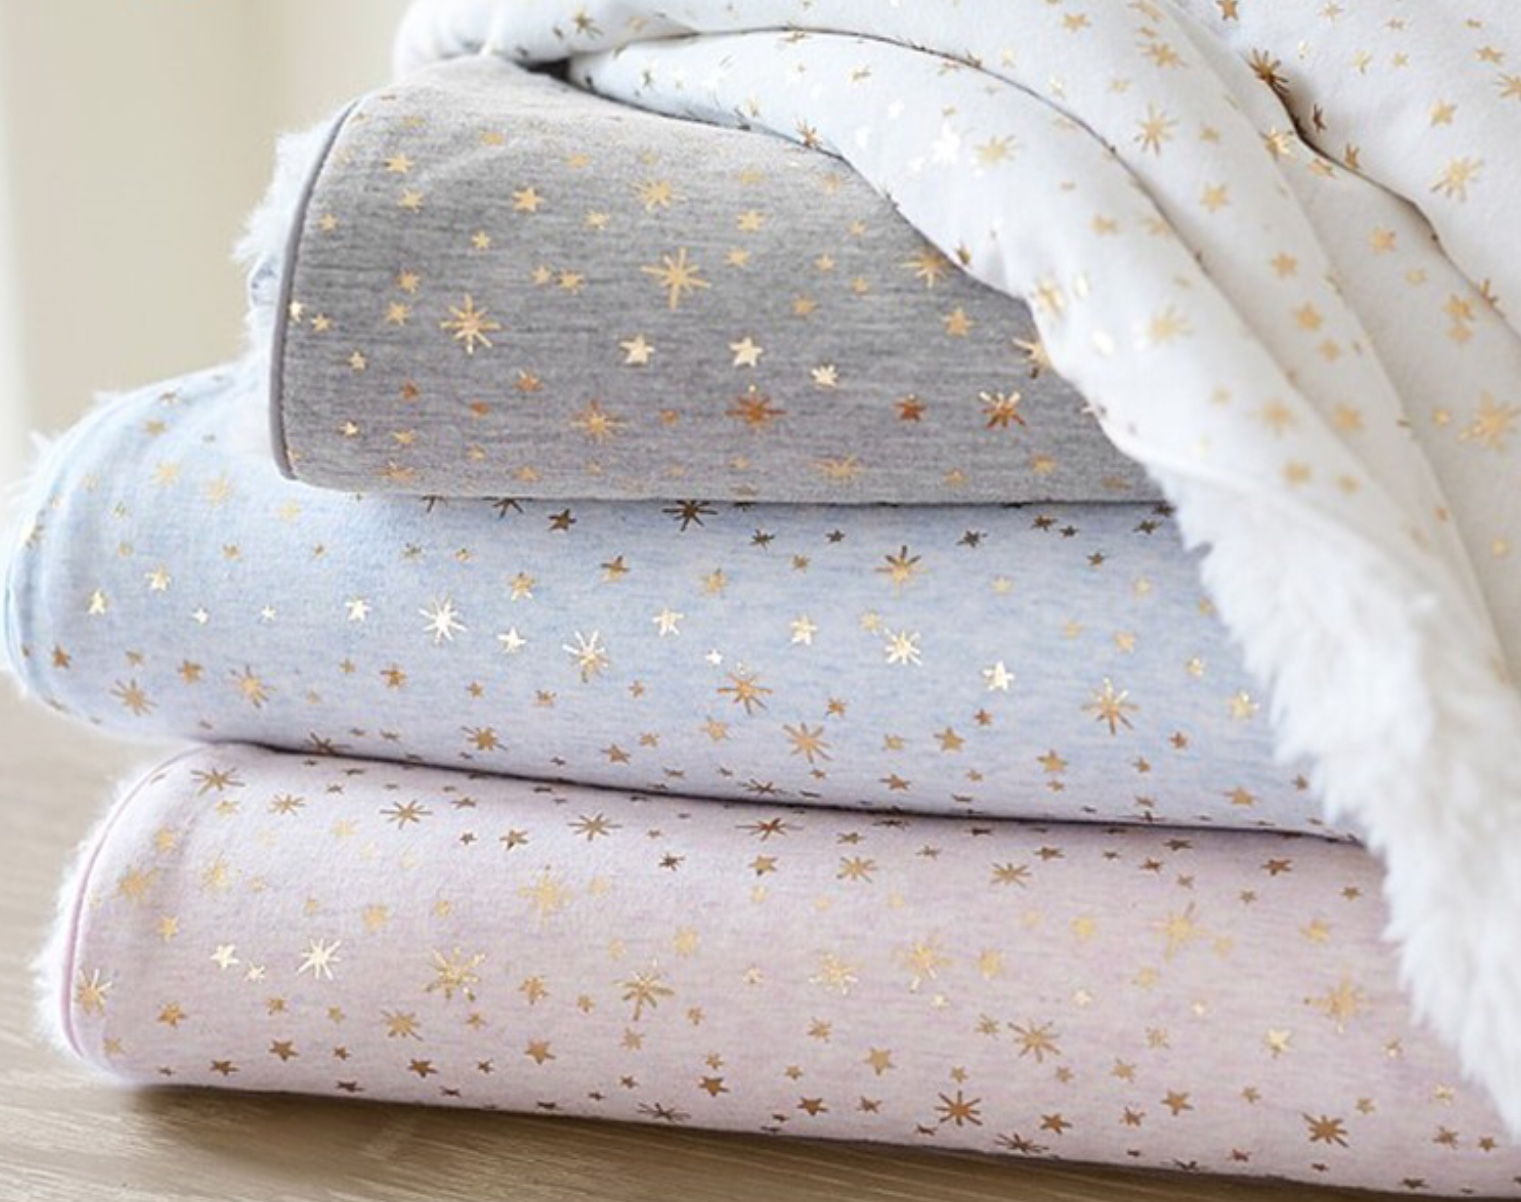 Things to Consider When Buying Fleece Baby Blankets